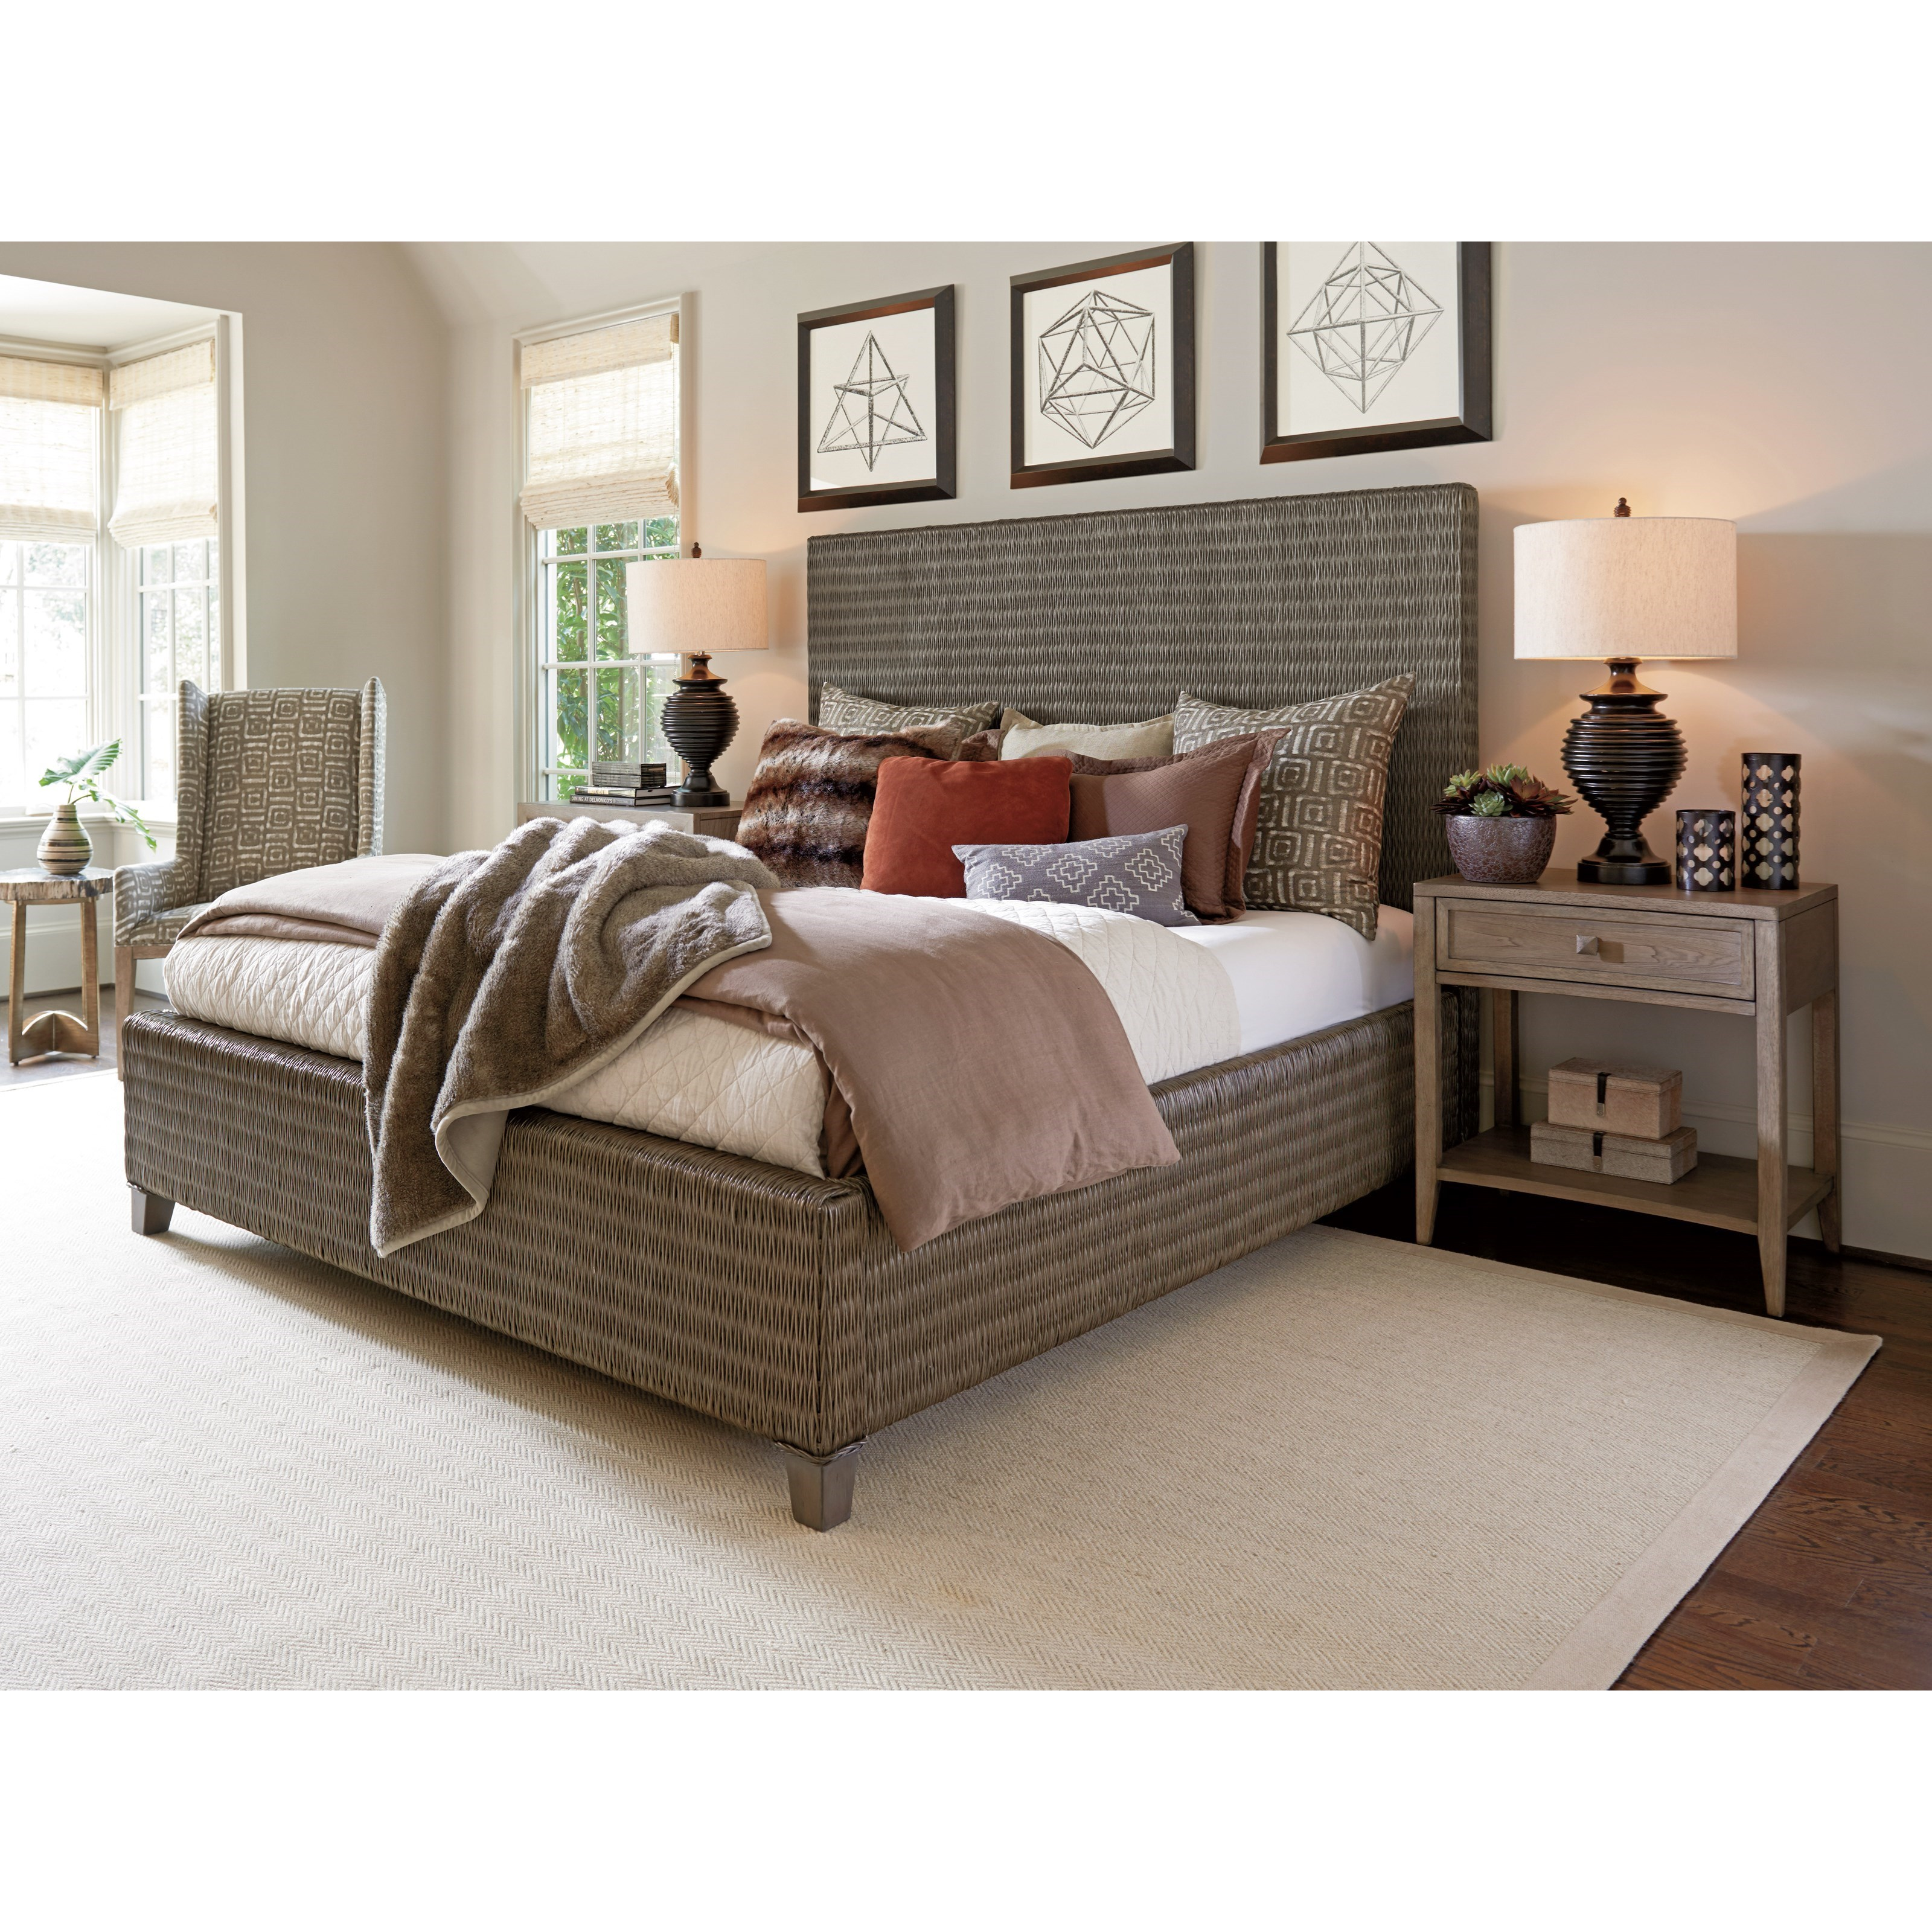 Tommy bahama home cypress point queen bedroom group baer Tommy bahama bedroom furniture sets